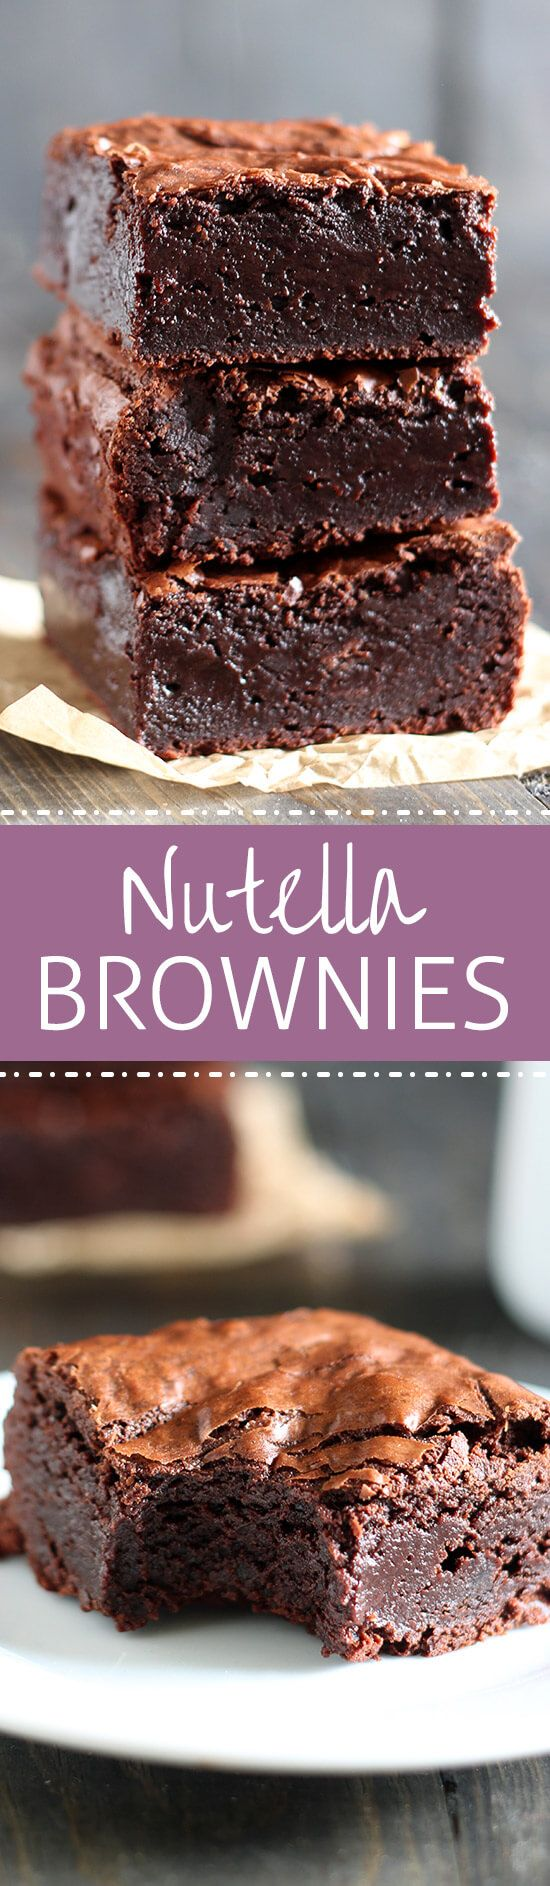 Nutella Brownies - Handle the Heat                                                                                                                                                                                 More